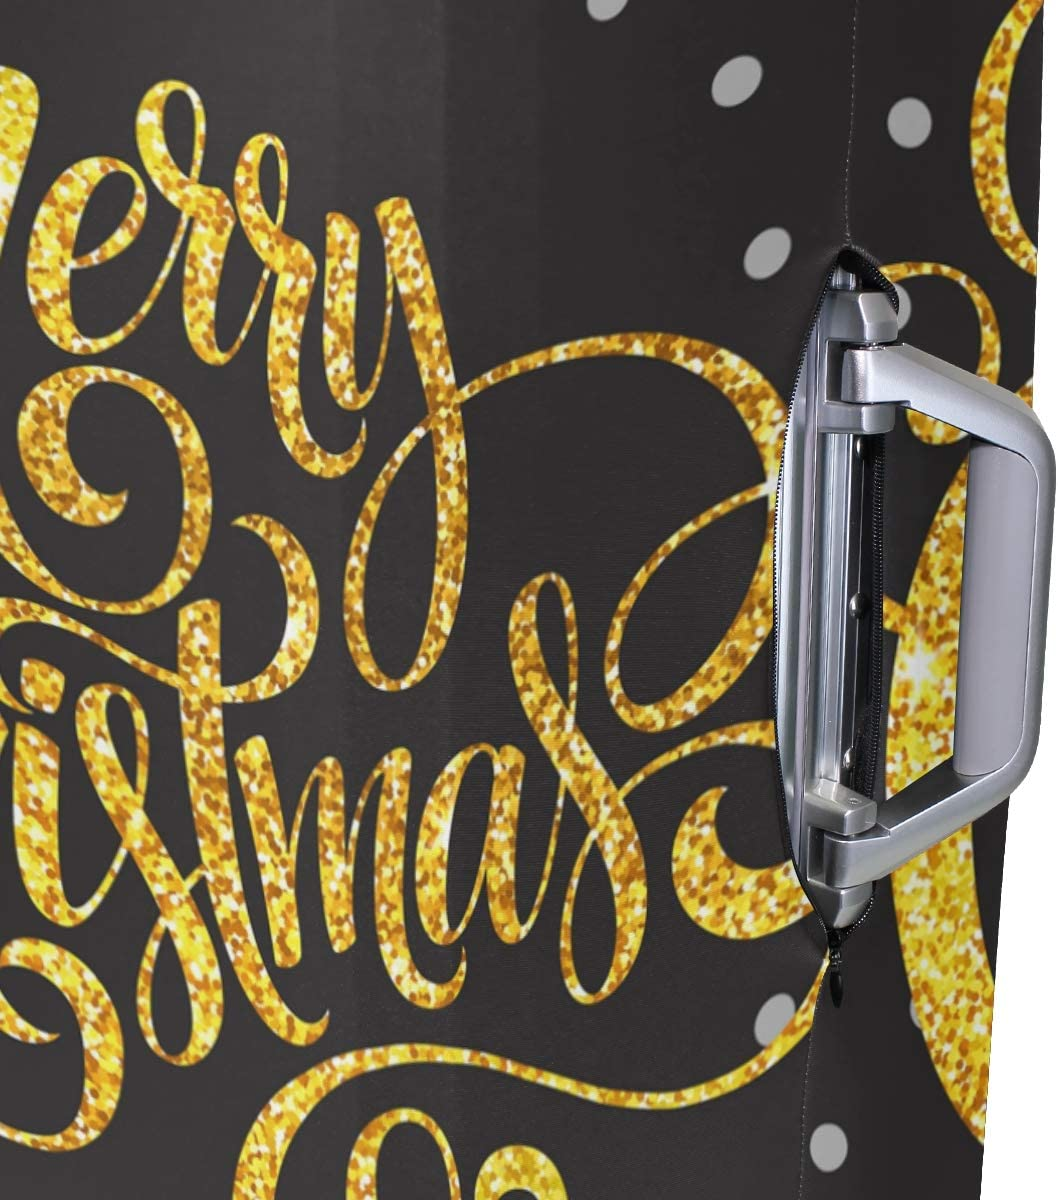 GIOVANIOR Merry Christmas Gold Glittering Lettering Design Luggage Cover Suitcase Protector Carry On Covers